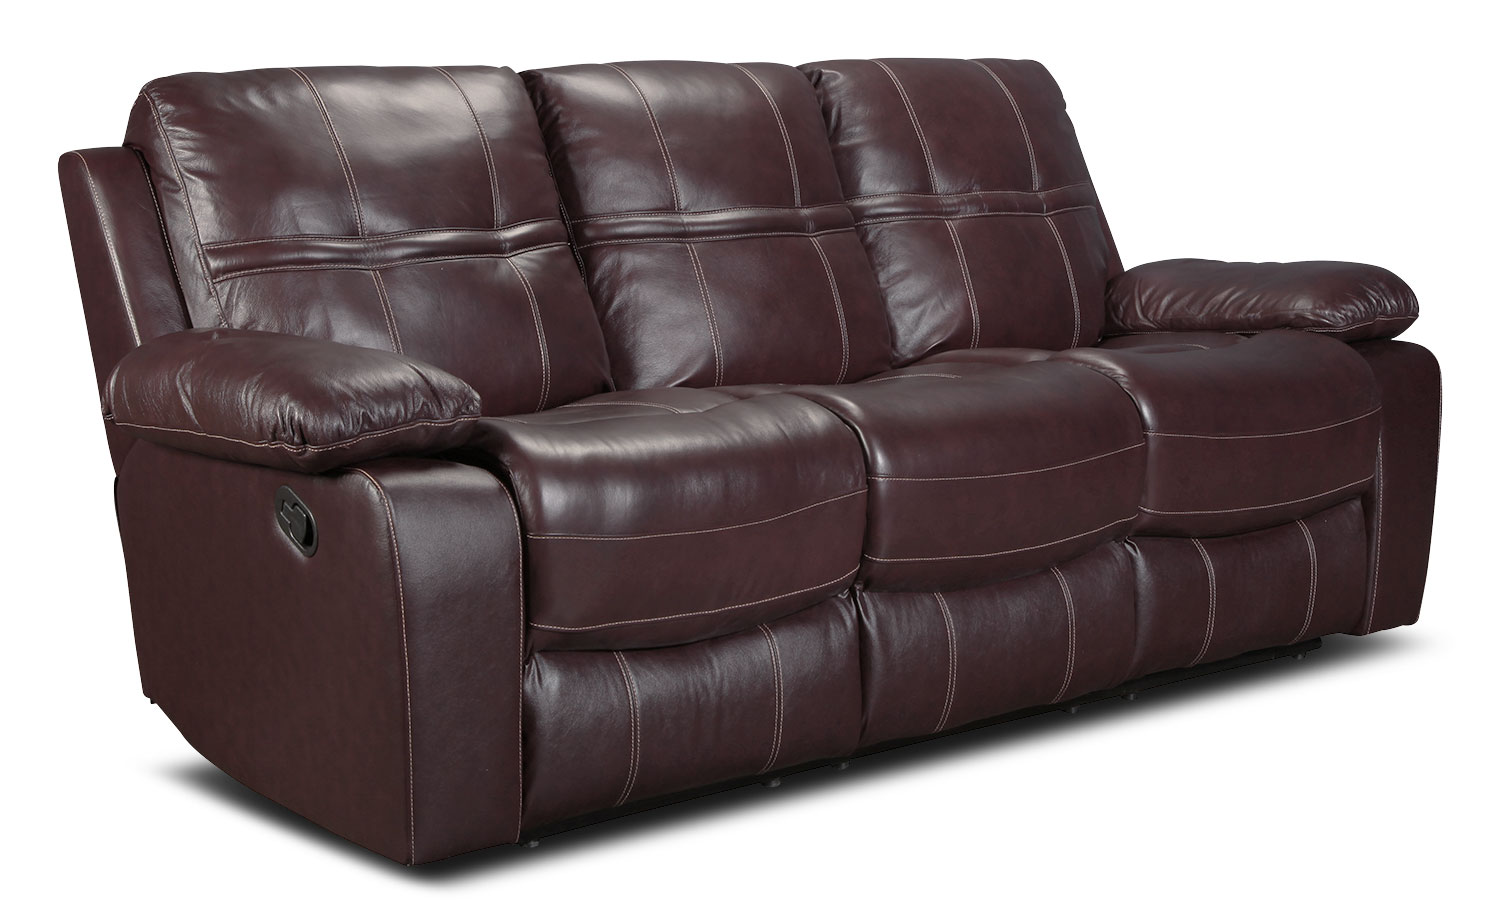 Belgrade Reclining Sofa - Burgundy